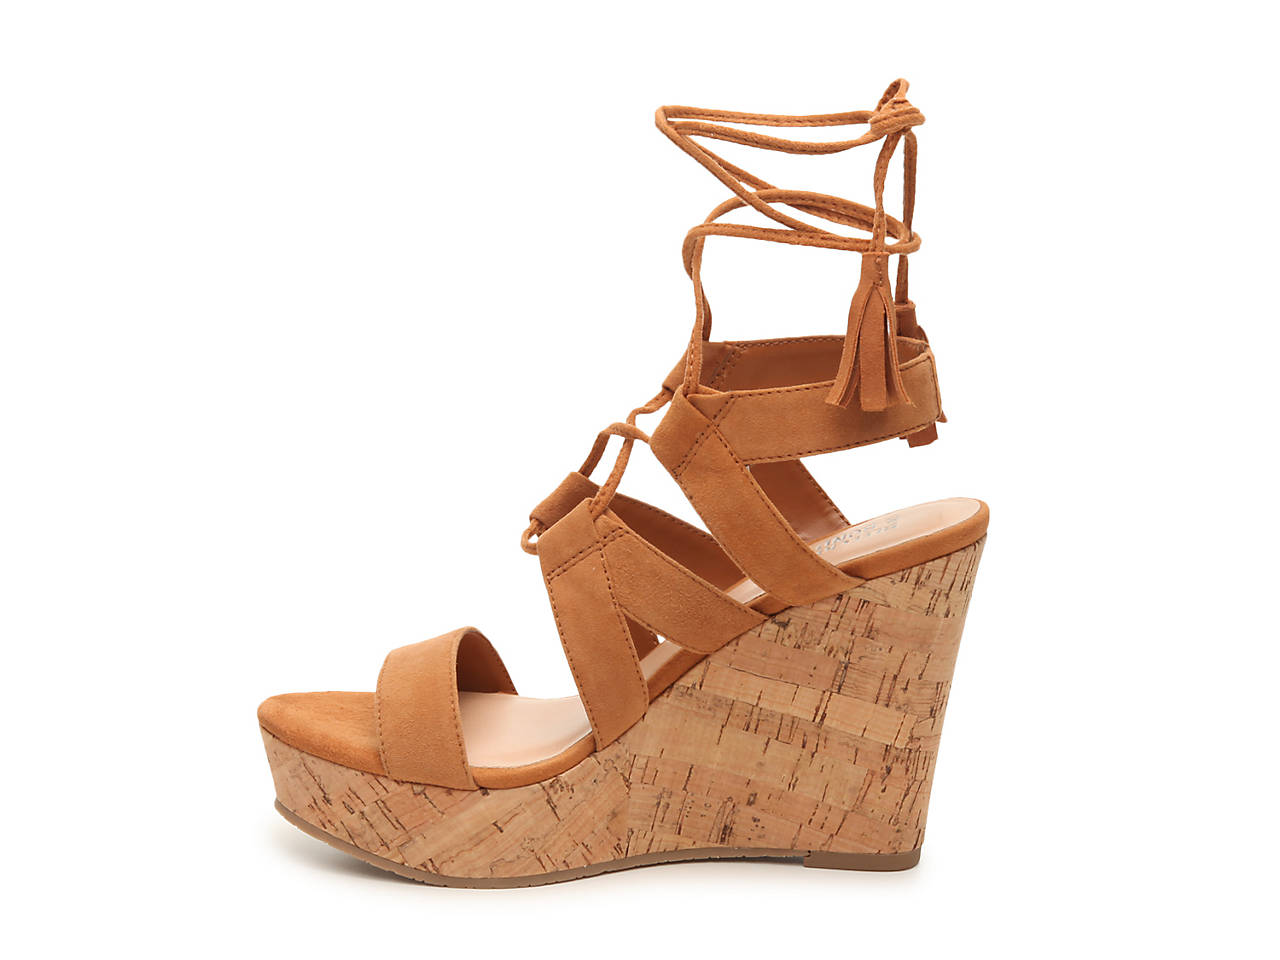 85e10041cf0 Bleecker   Bond Marisol Wedge Sandal Women s Shoes